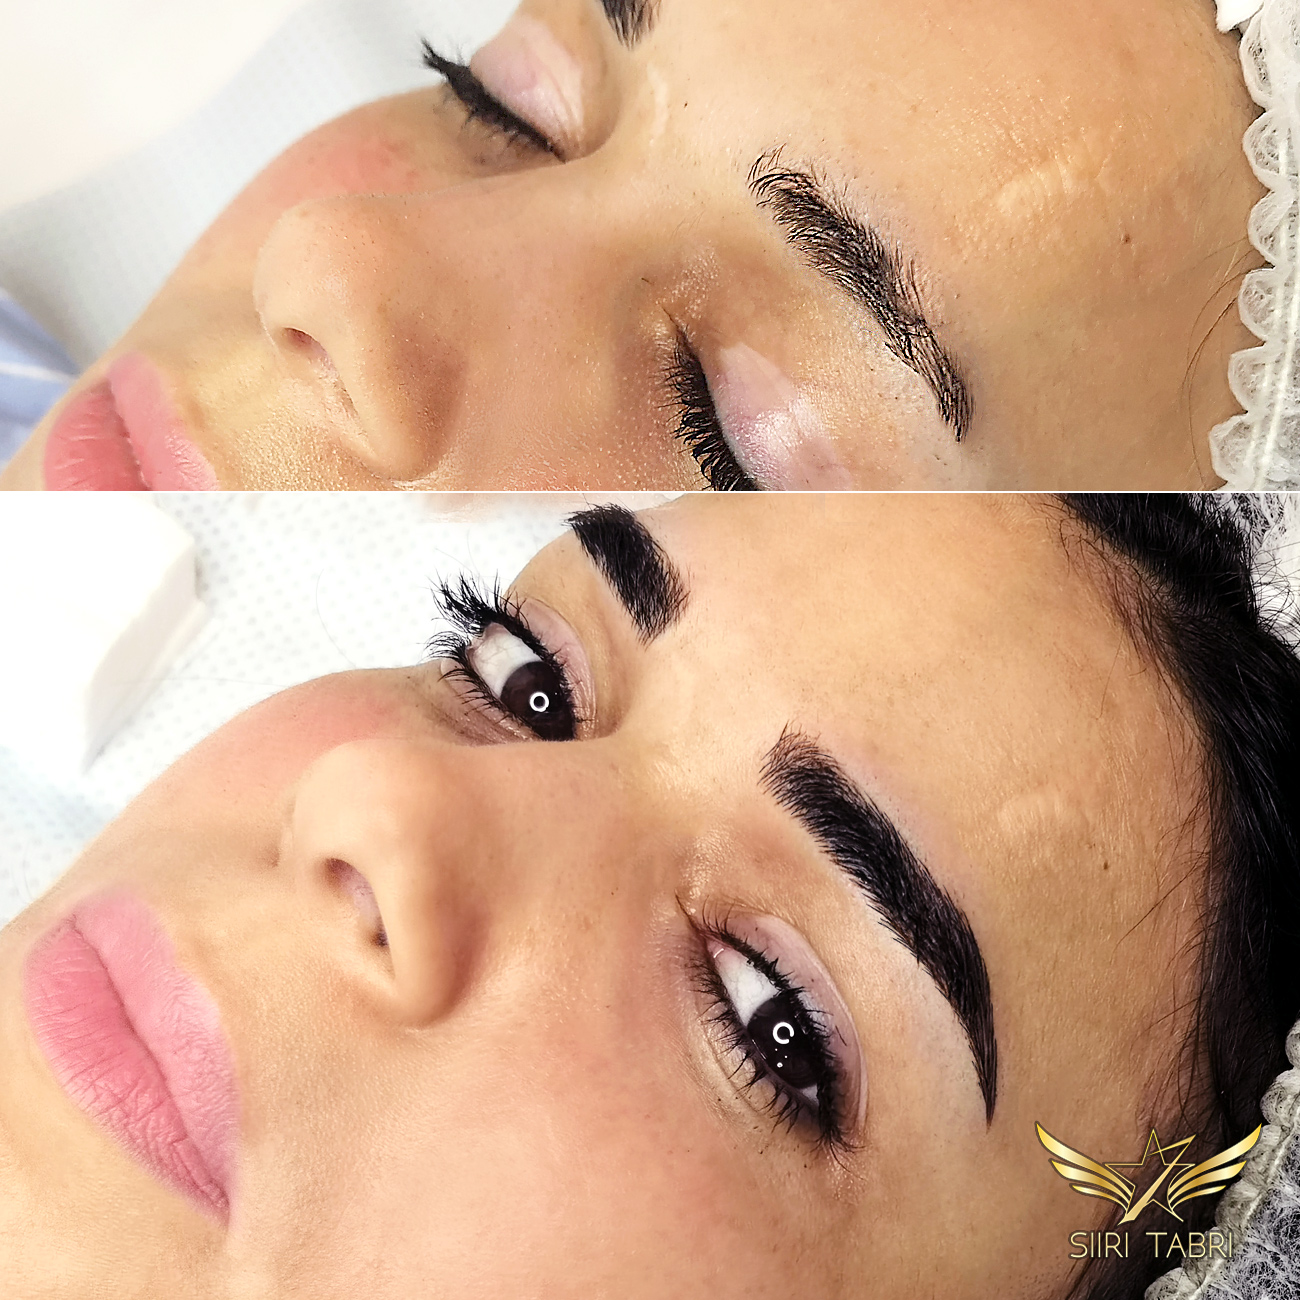 Light microblading. Sometimes the original brow is quite out of shape. With Light microblading we can get it back in shape again.